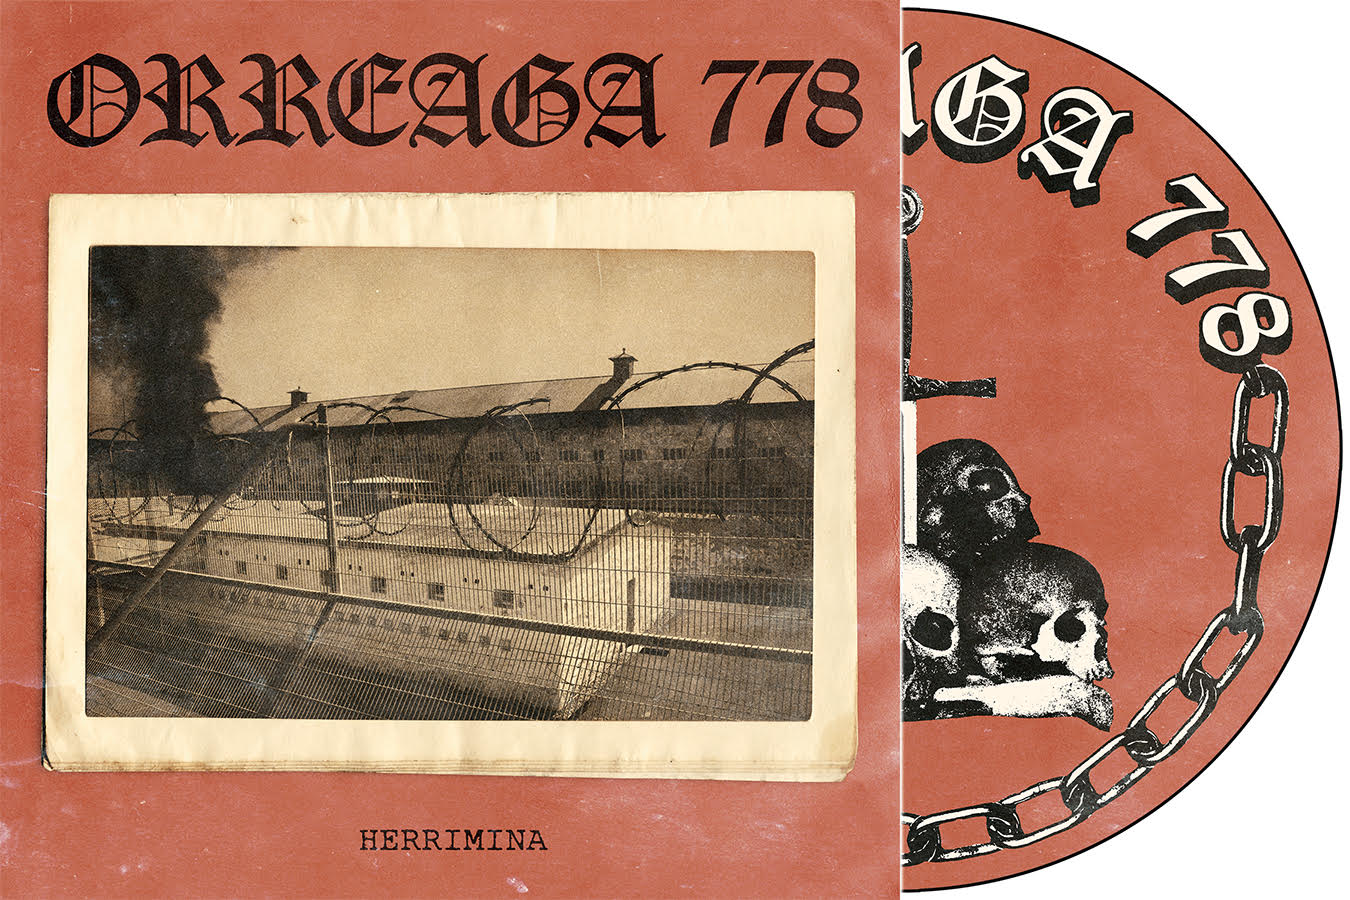 "ORREAGA 778 - ""Herrimina"" 12"" Picture Disc LP"